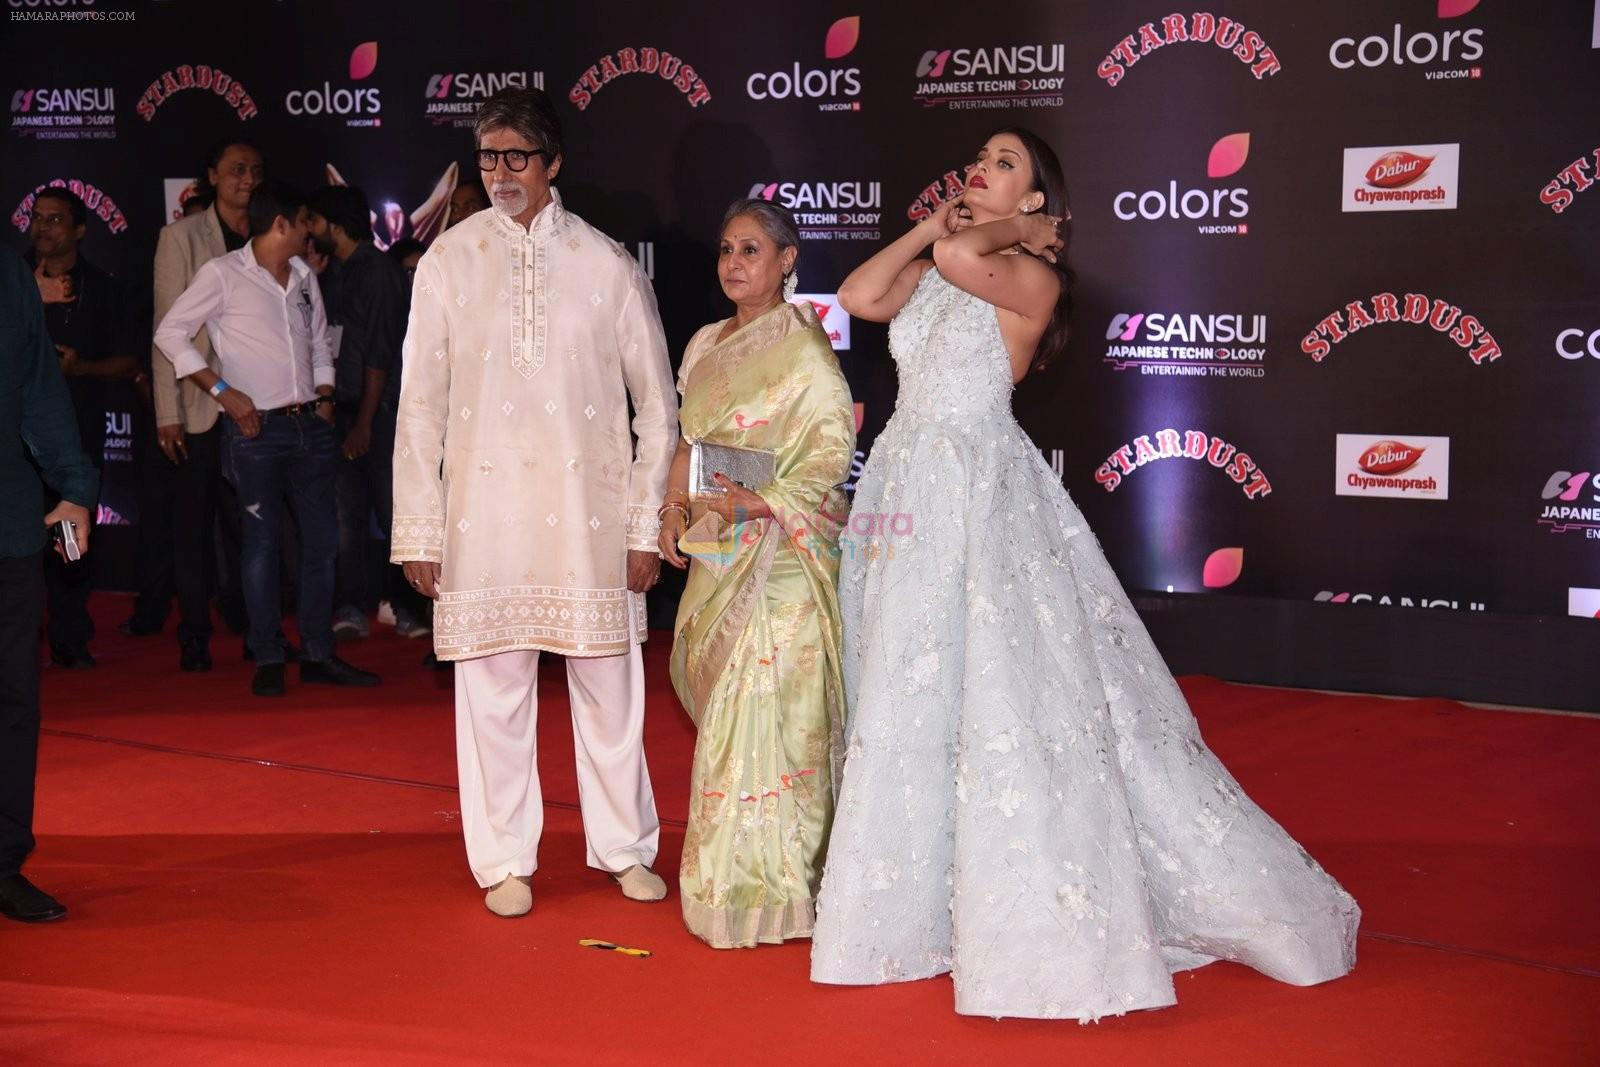 Amitabh Bachchan, Jaya Bachchan, Aishwarya Rai Bachchan at 14th Sansui COLORS Stardust Awards on 19th Dec 2016